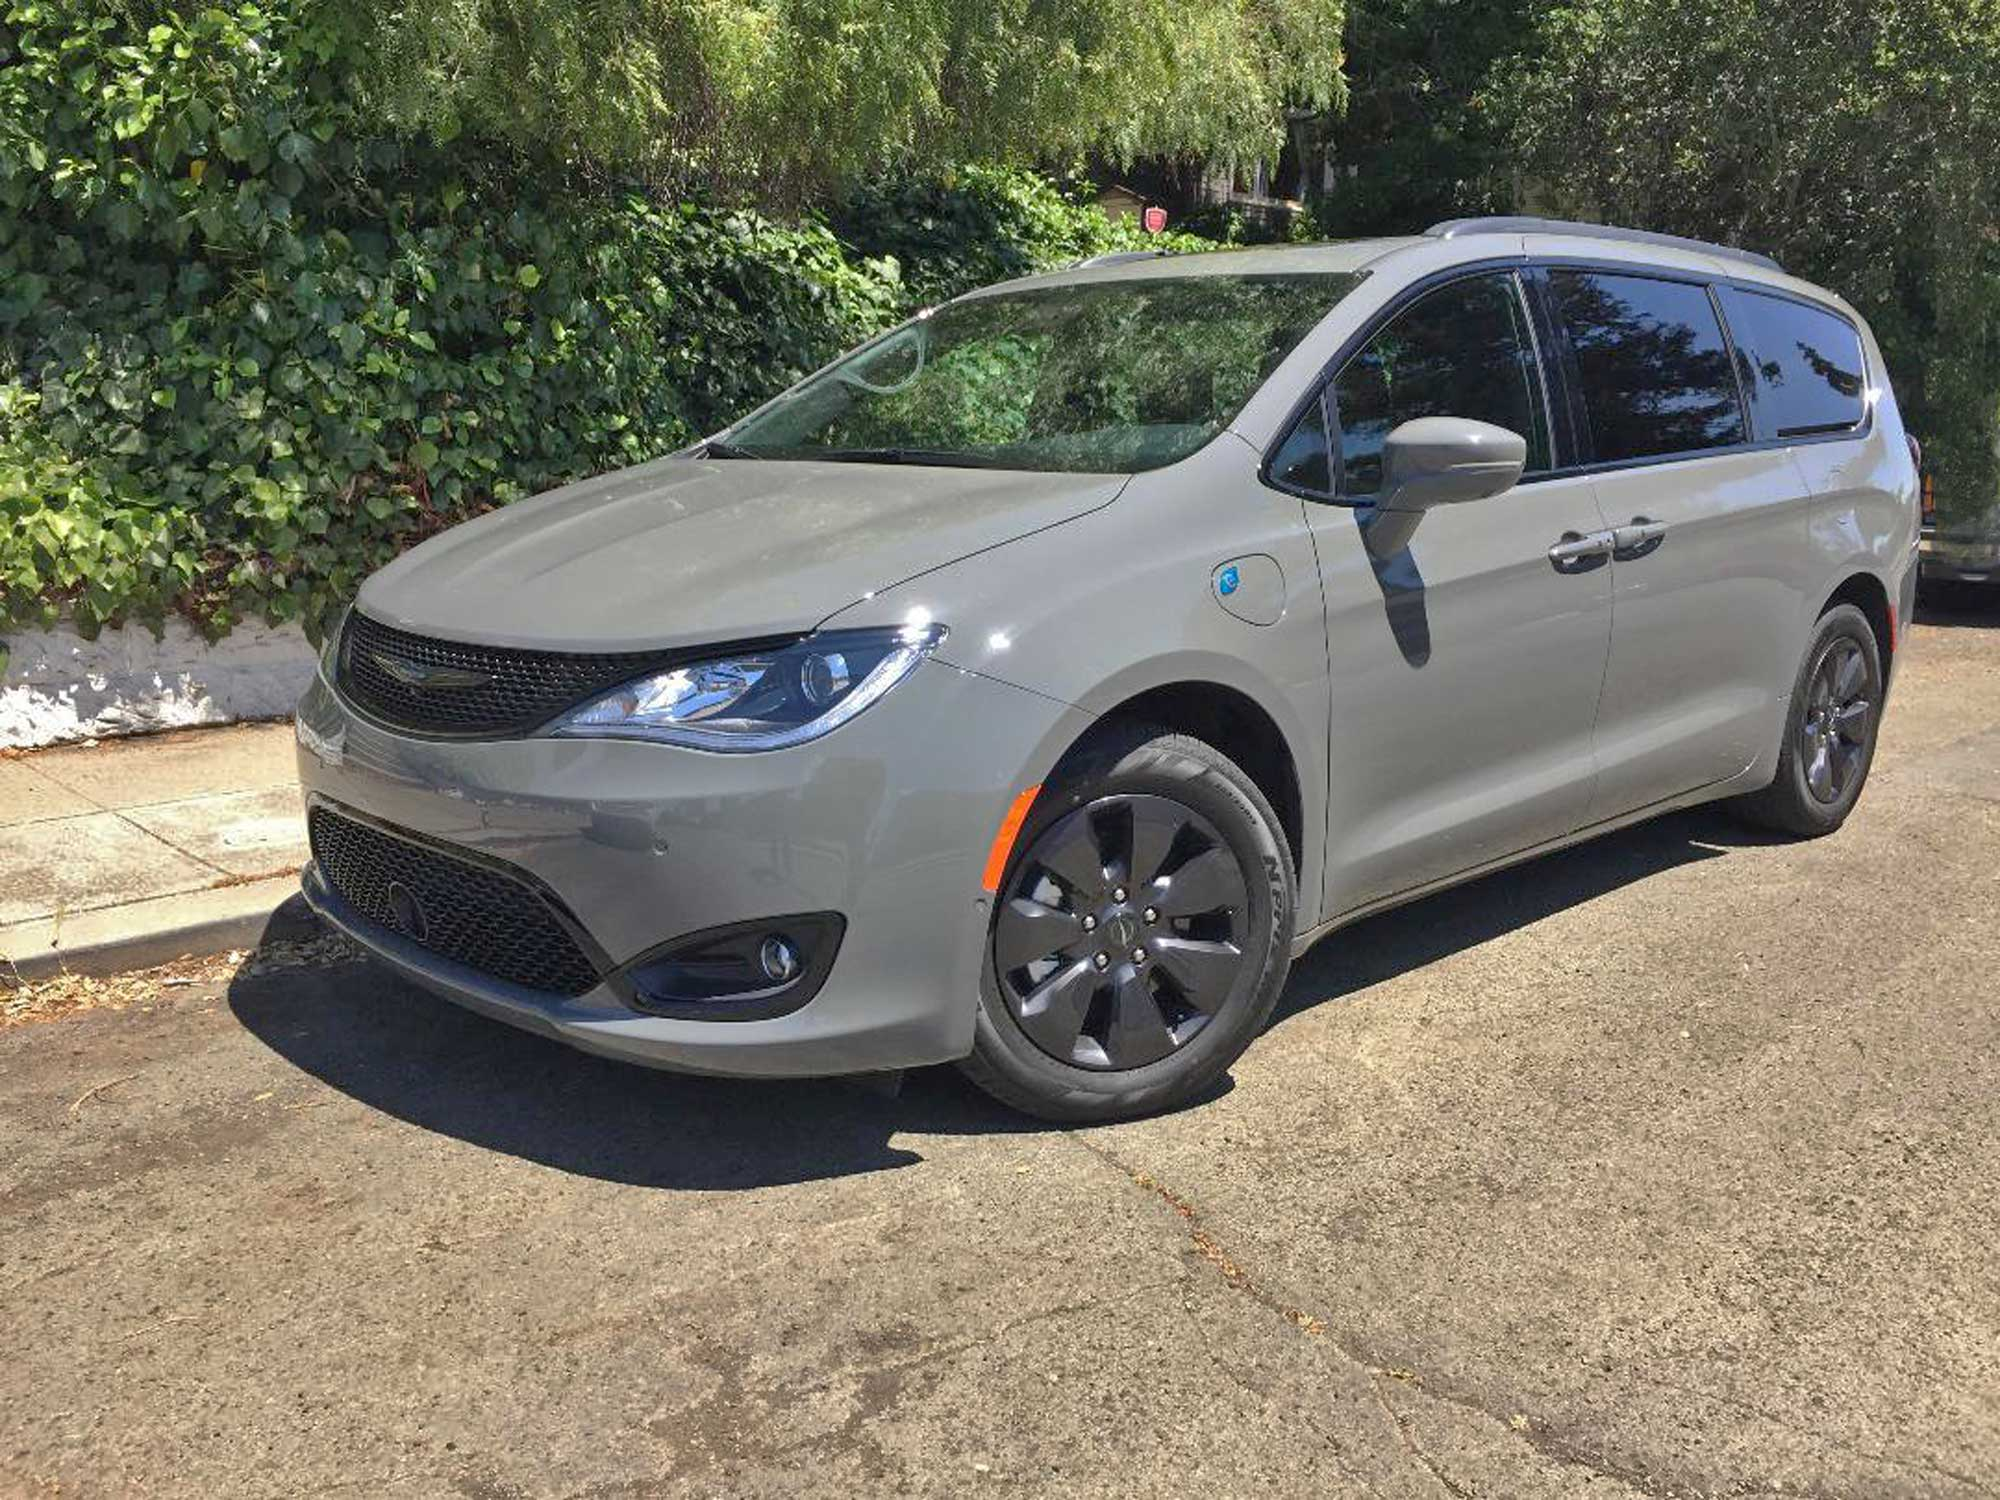 2020 Chrysler Pacifica Hybrid S Limited Test Drive